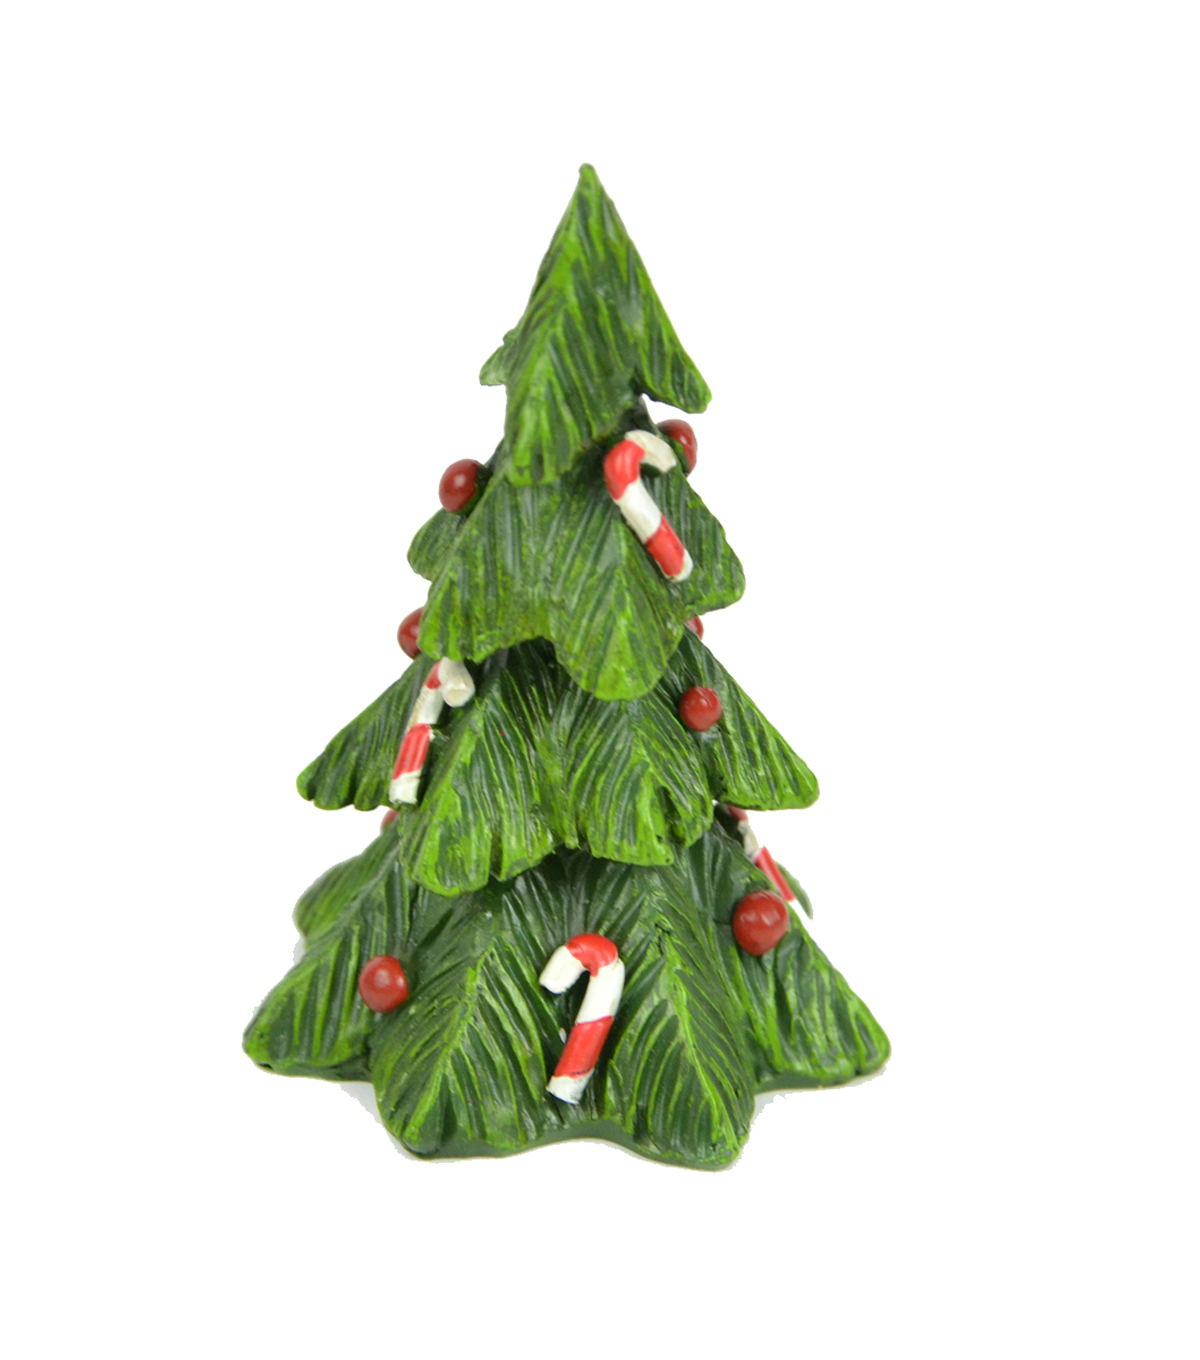 Maker's Holiday Littles Resin Tree with Candy Canes